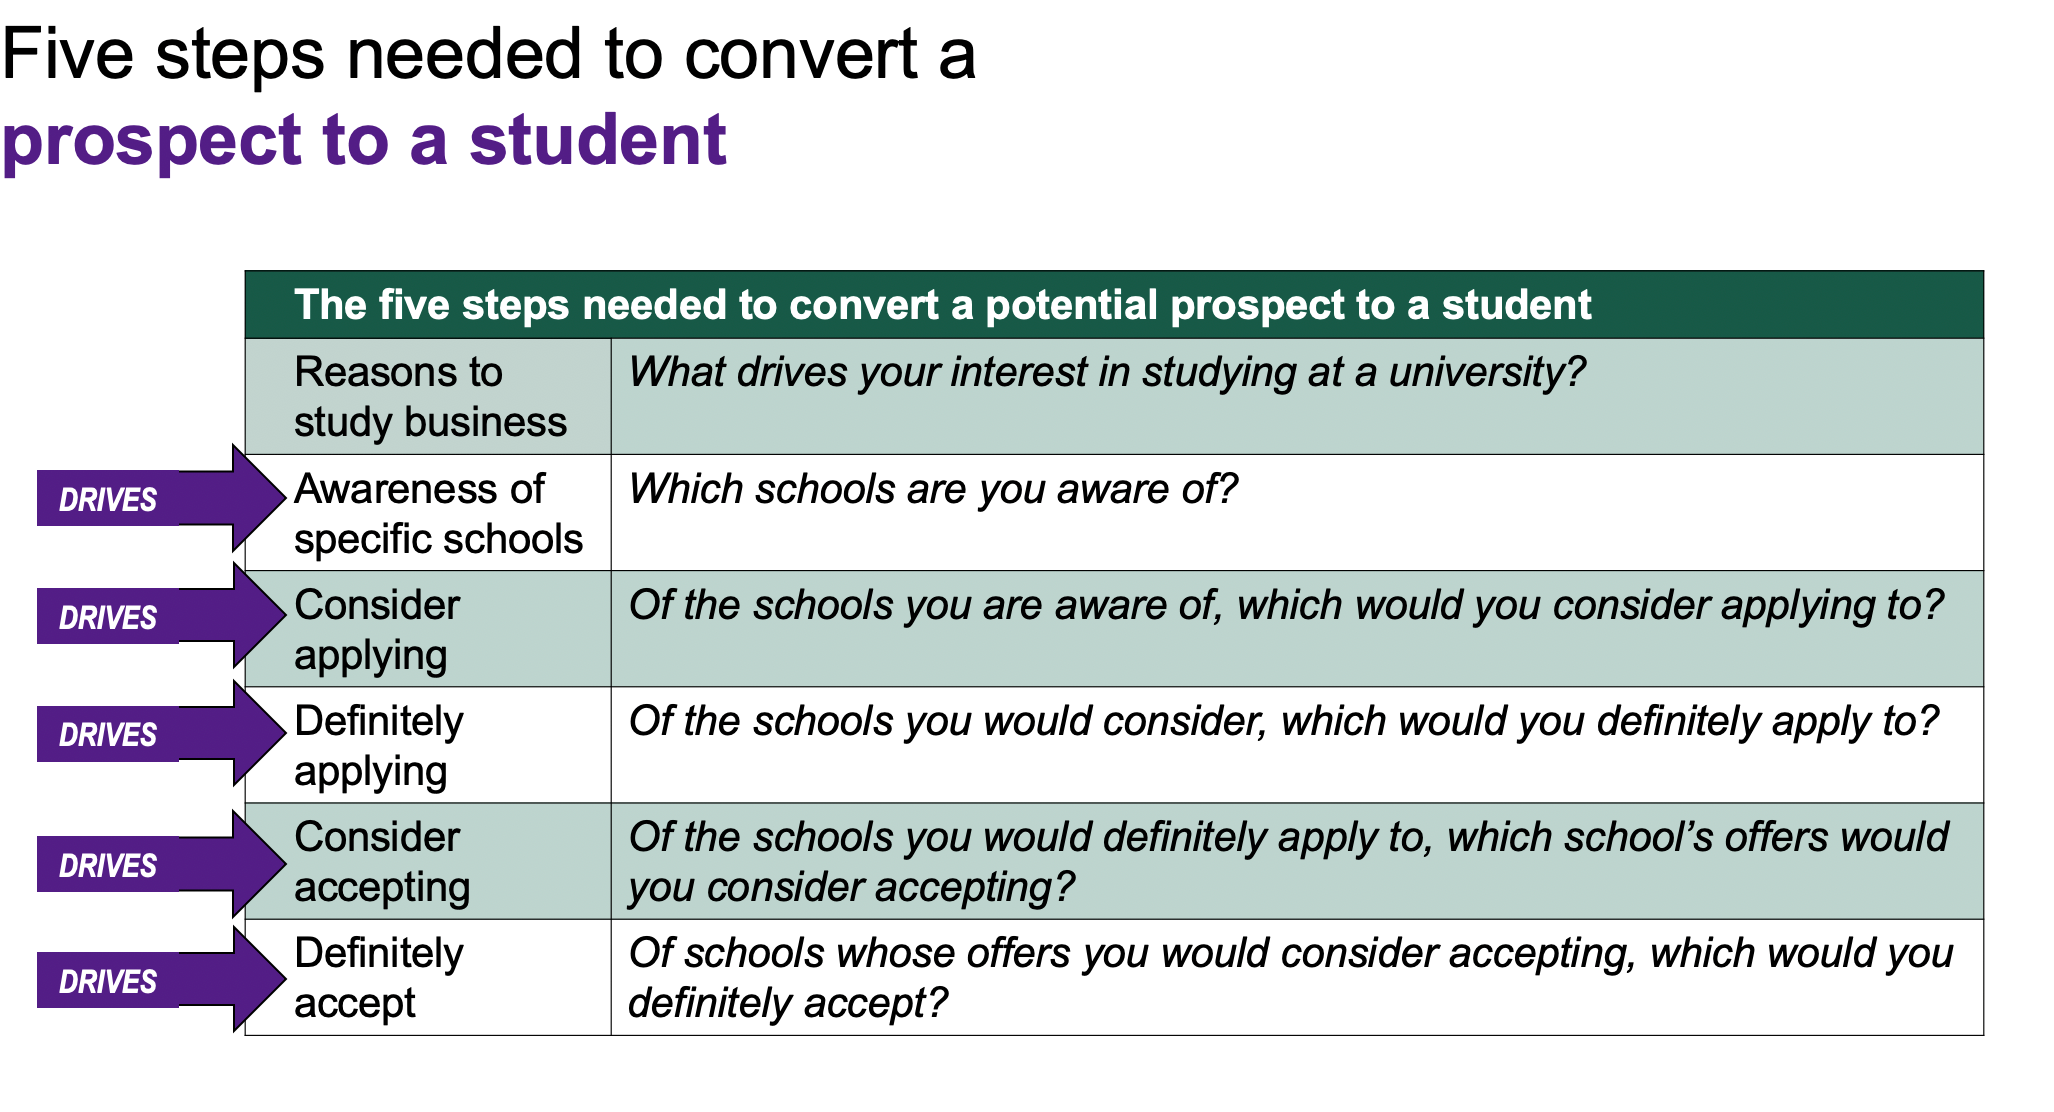 The research mimics the decision gateways a prospect passes through on their way to choosing a school to attend.